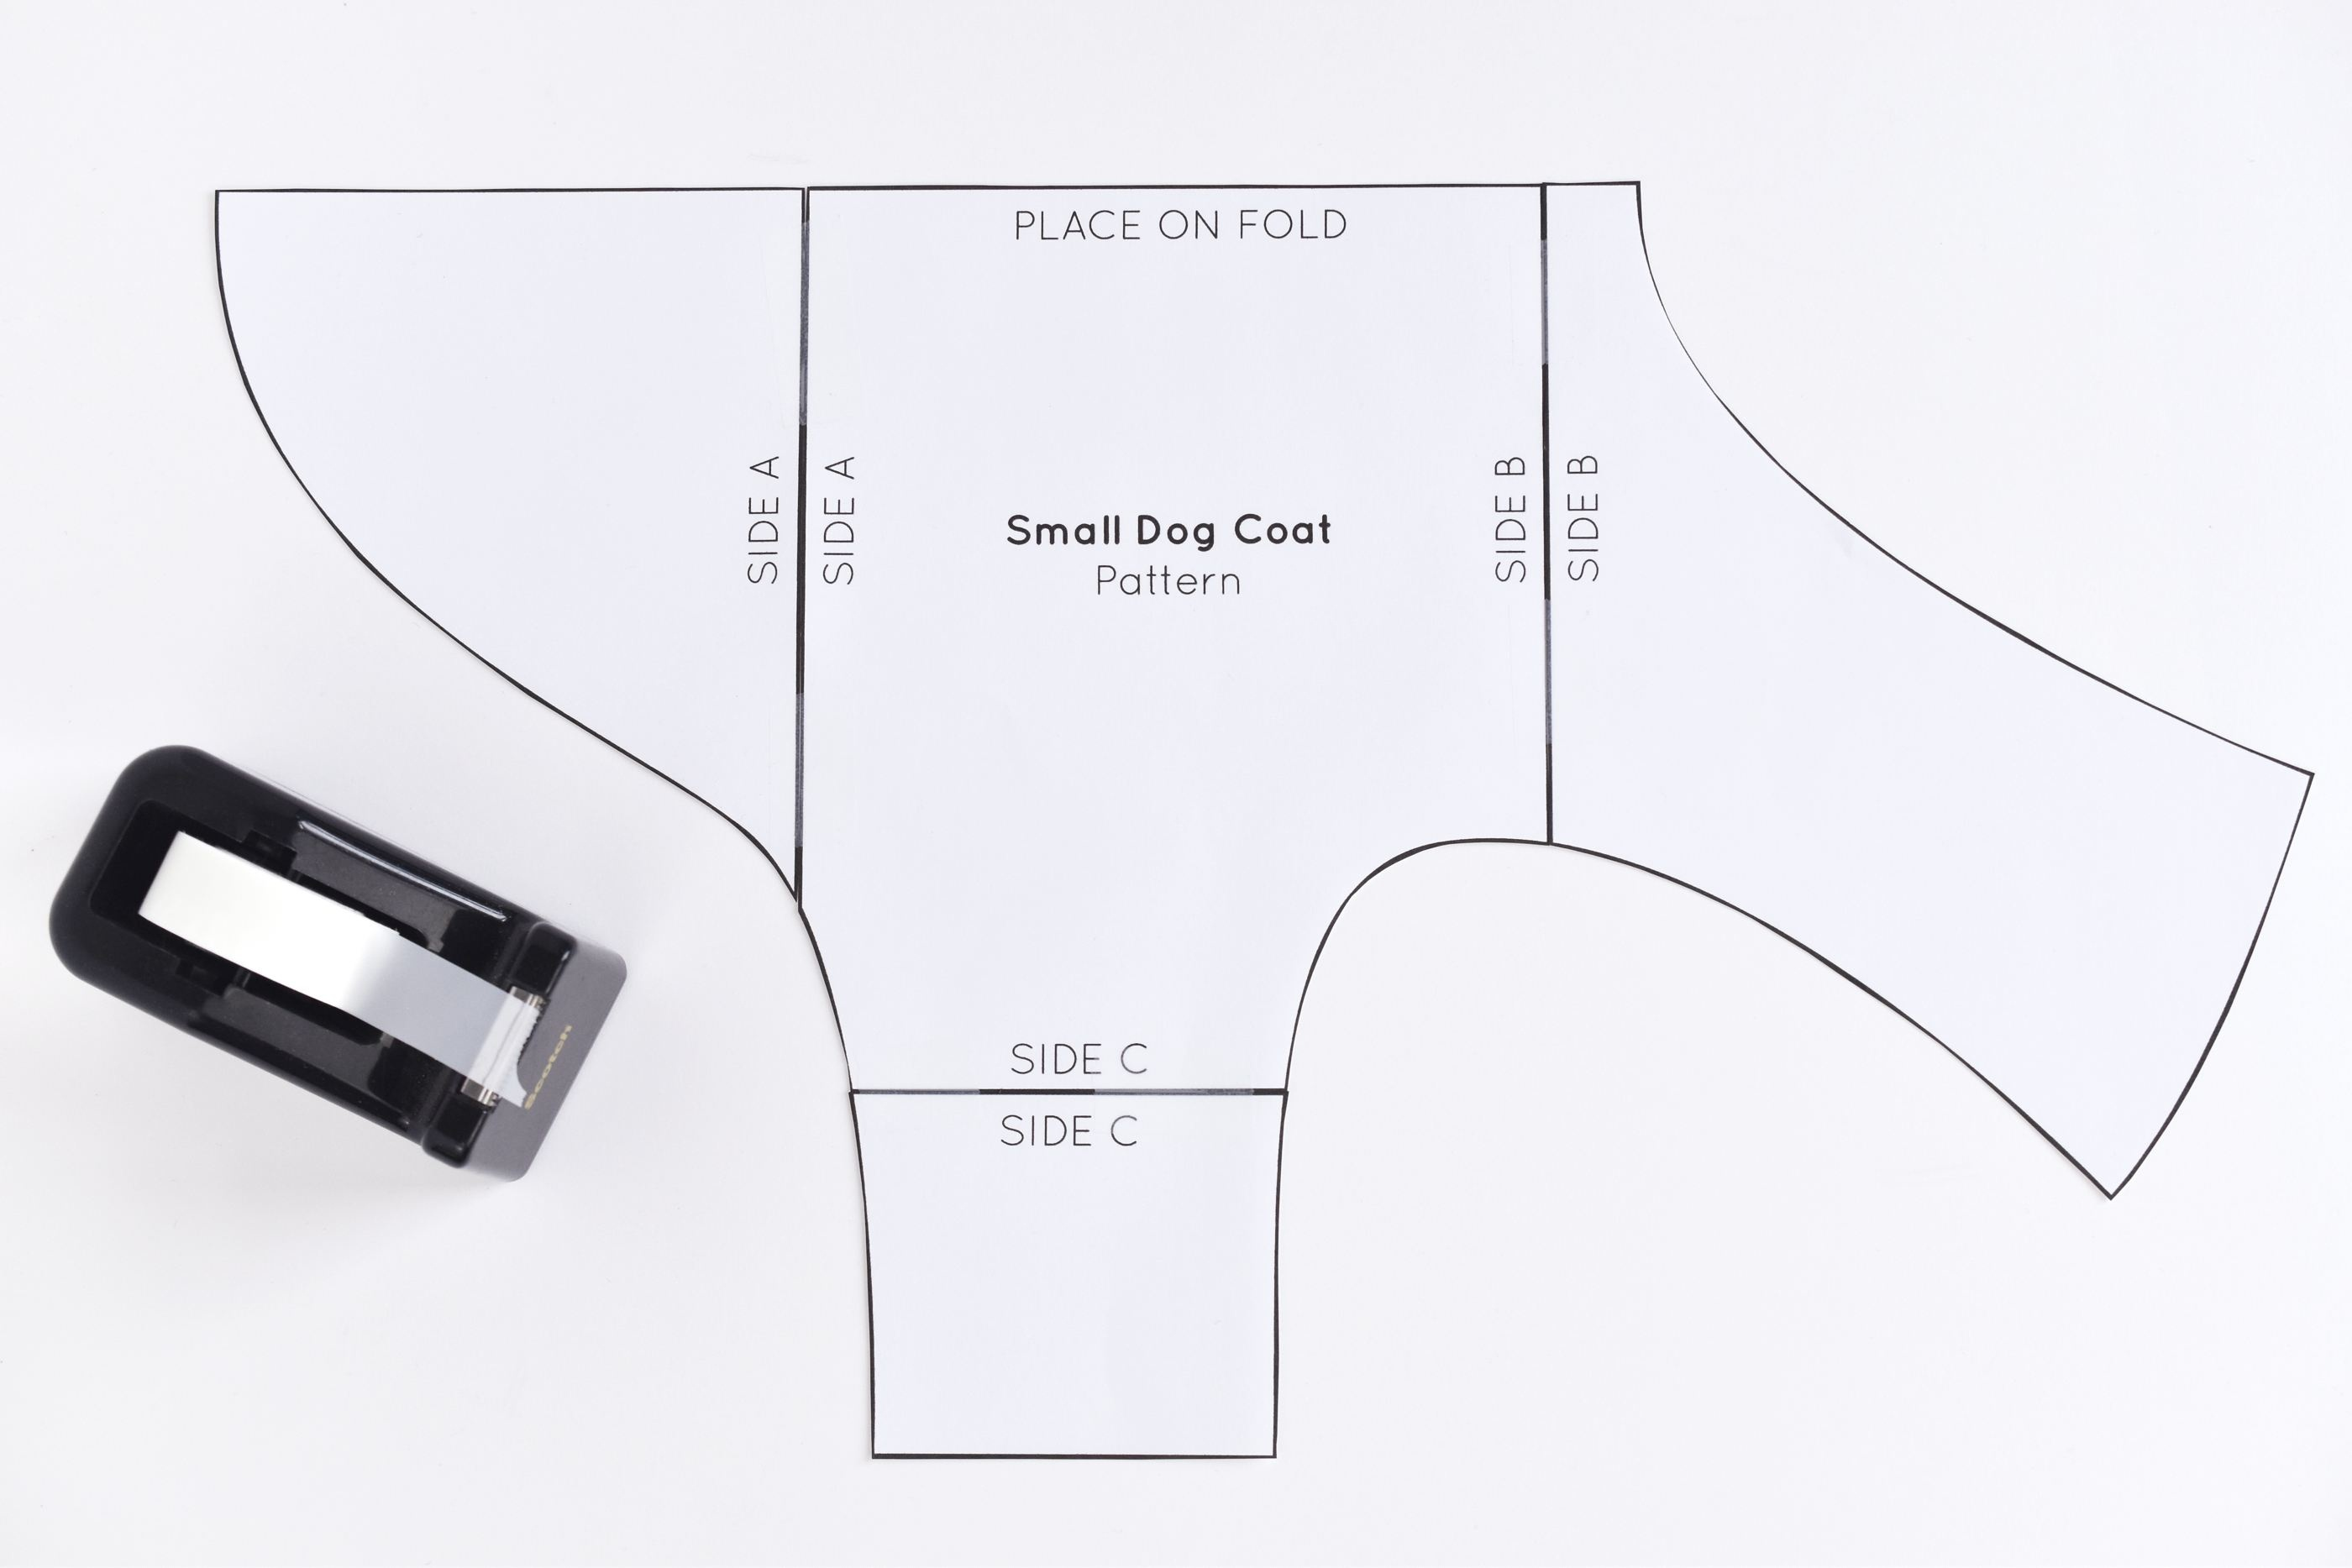 Free Sewing Pattern For A Warm, Weatherproof Dog Coat - Dog Sewing Patterns Free Printable